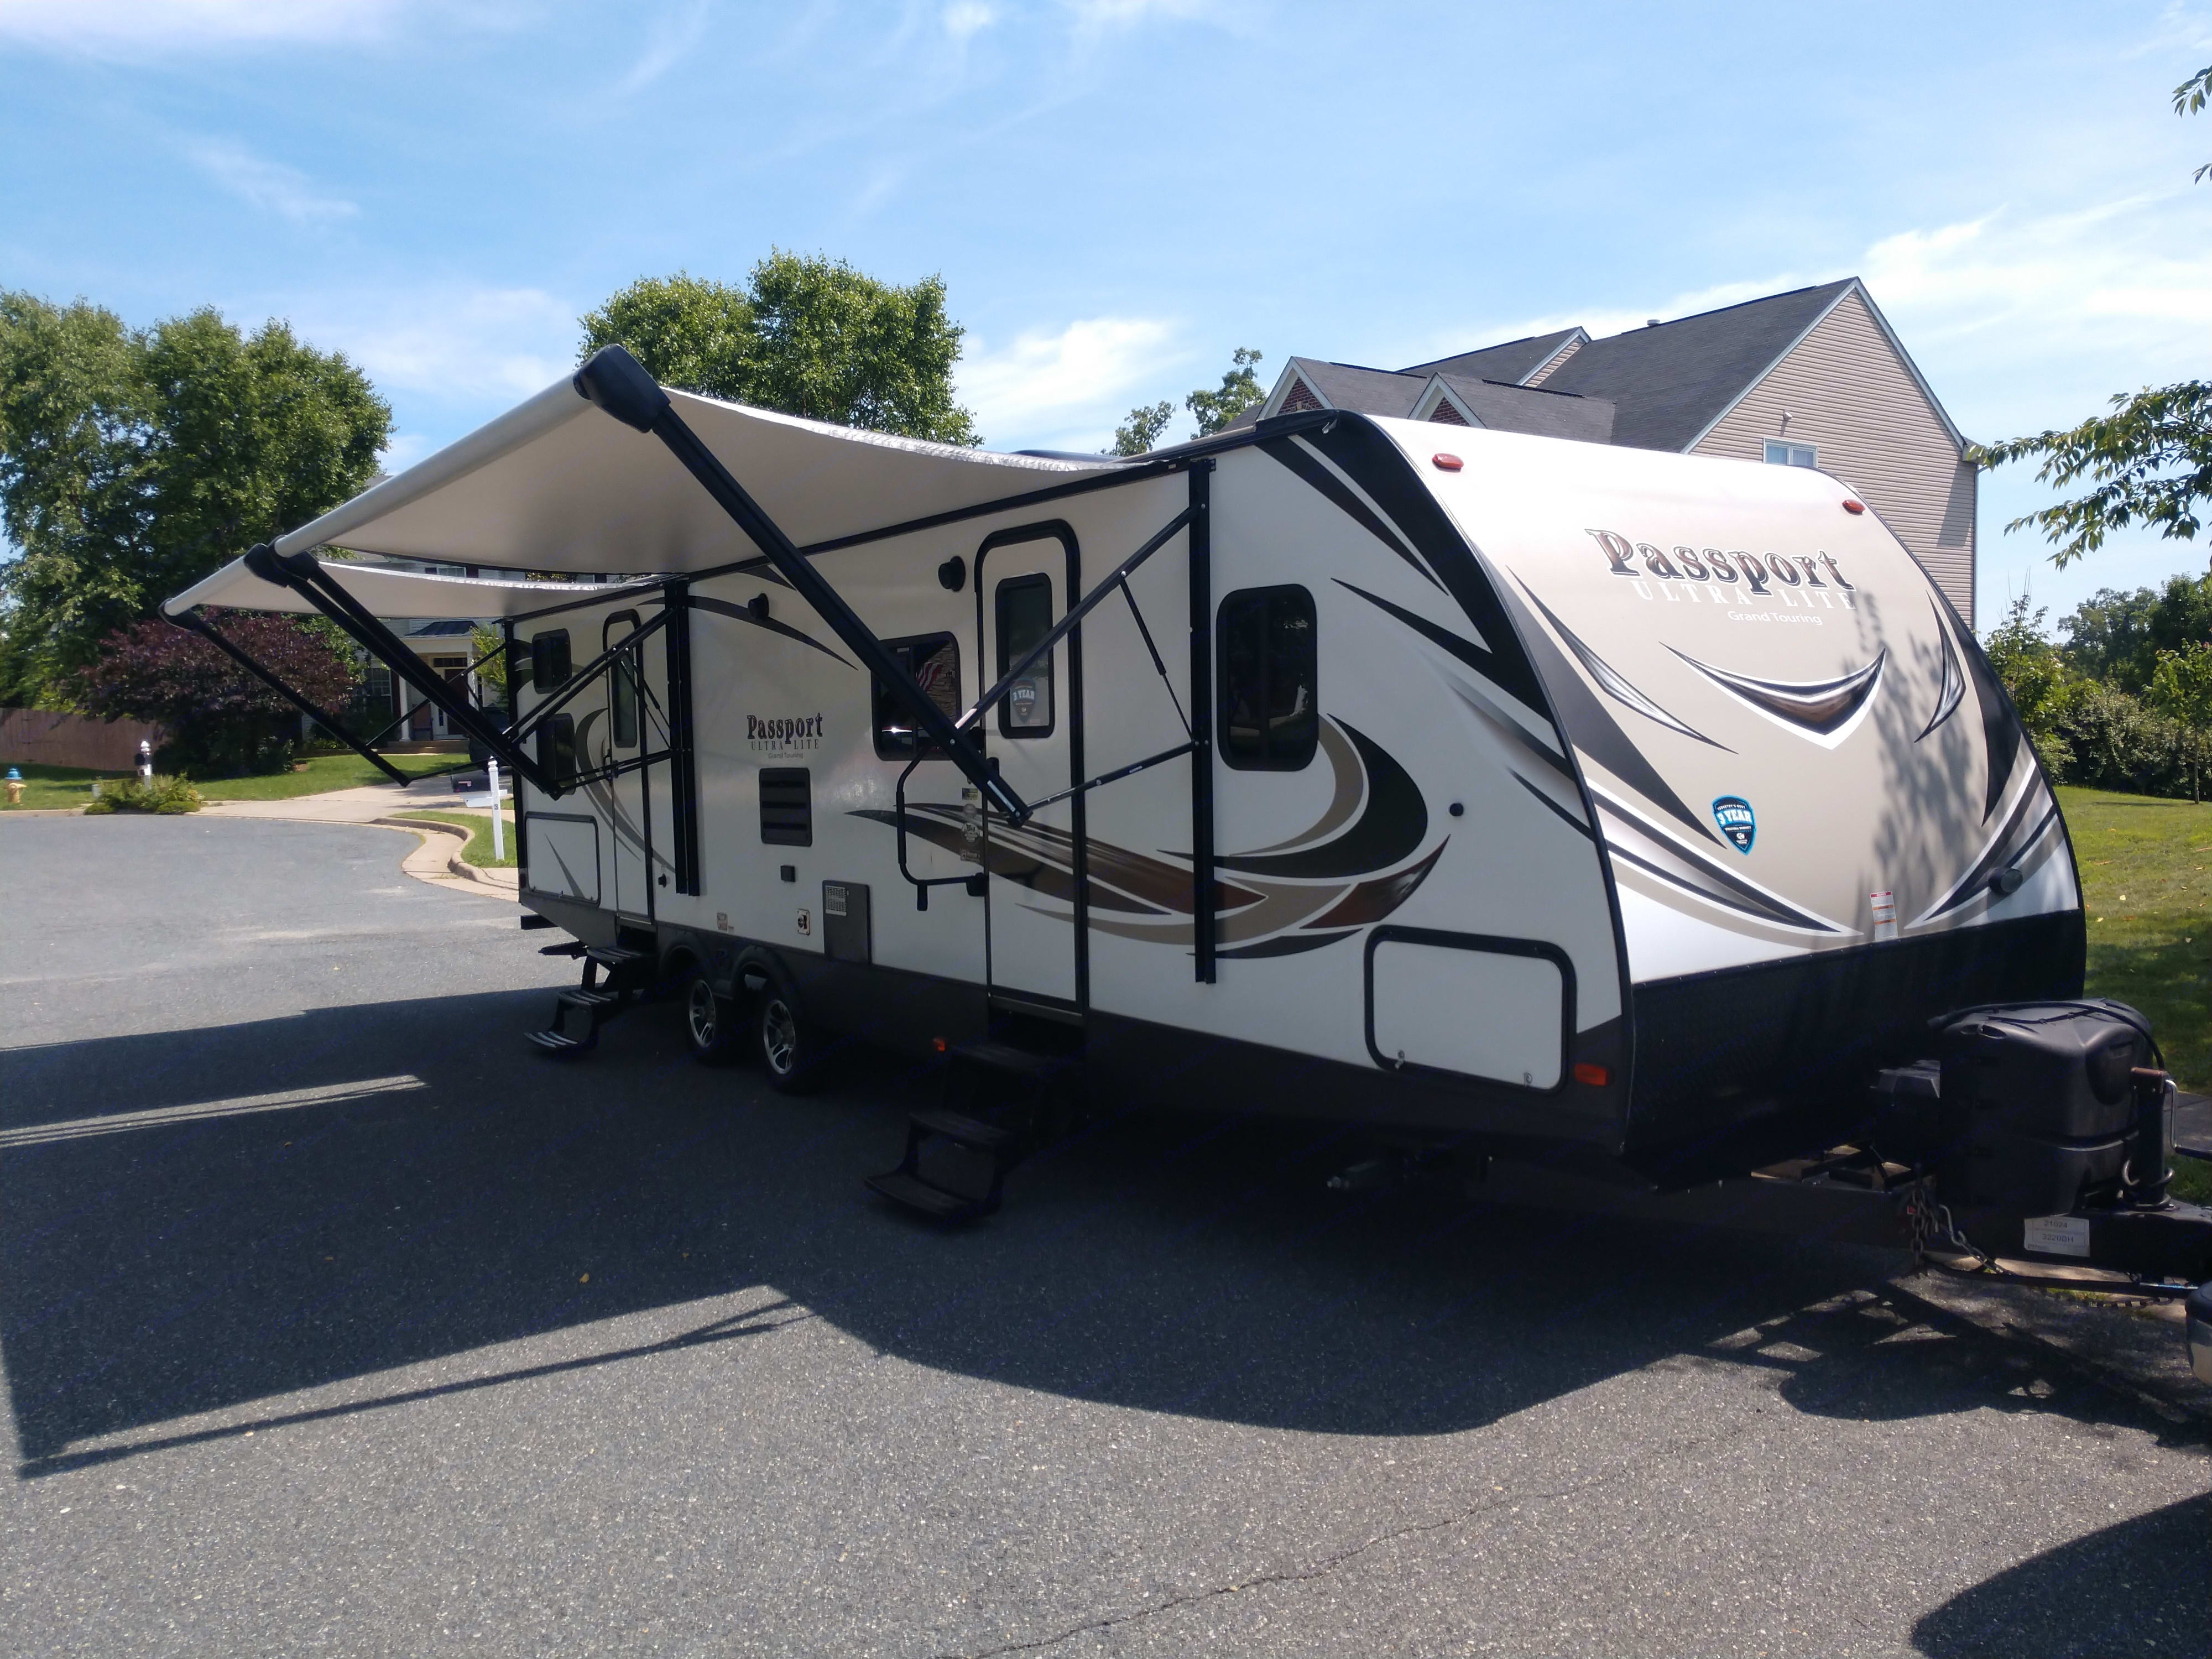 Dual awnings for shade and entries for convenience!  Second door opens up into bathroom for easy outdoor access!. Keystone Passport 2018